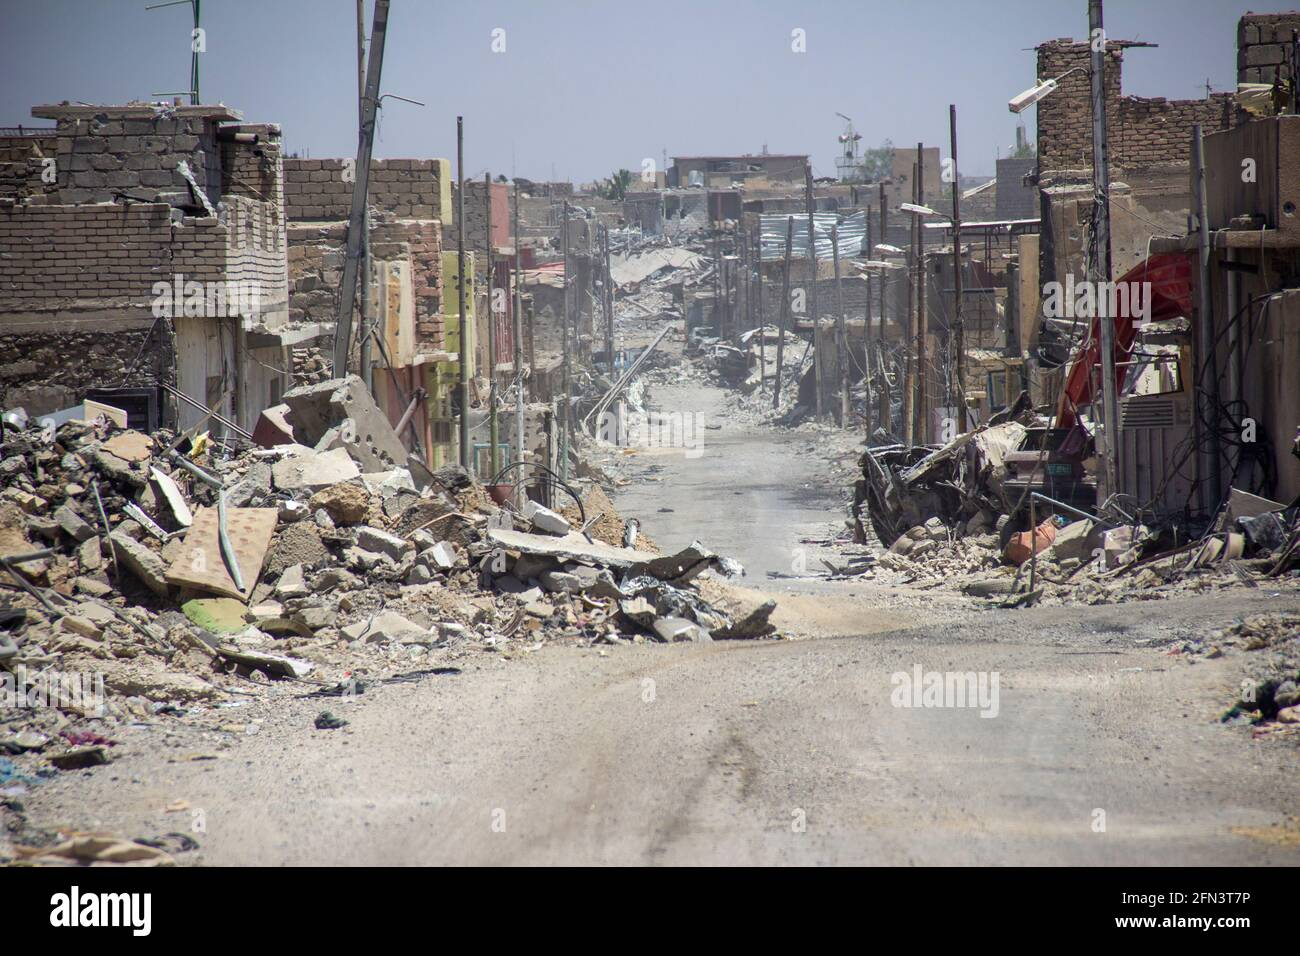 Destruction of buildings and property in West Mosul during the 2016-2017 Mosul Operation. Stock Photo